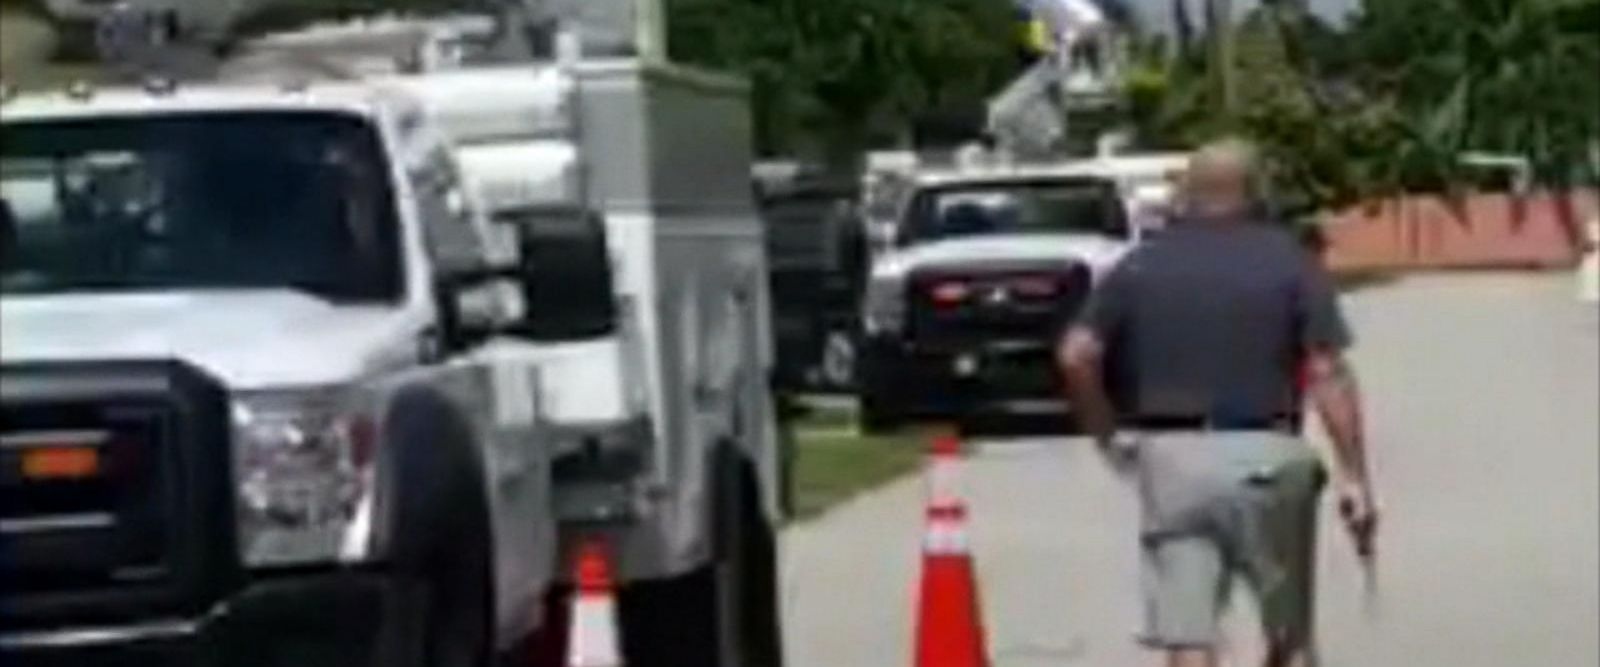 VIDEO: Retired firefighter shoots at utility trucks parked by his Florida home